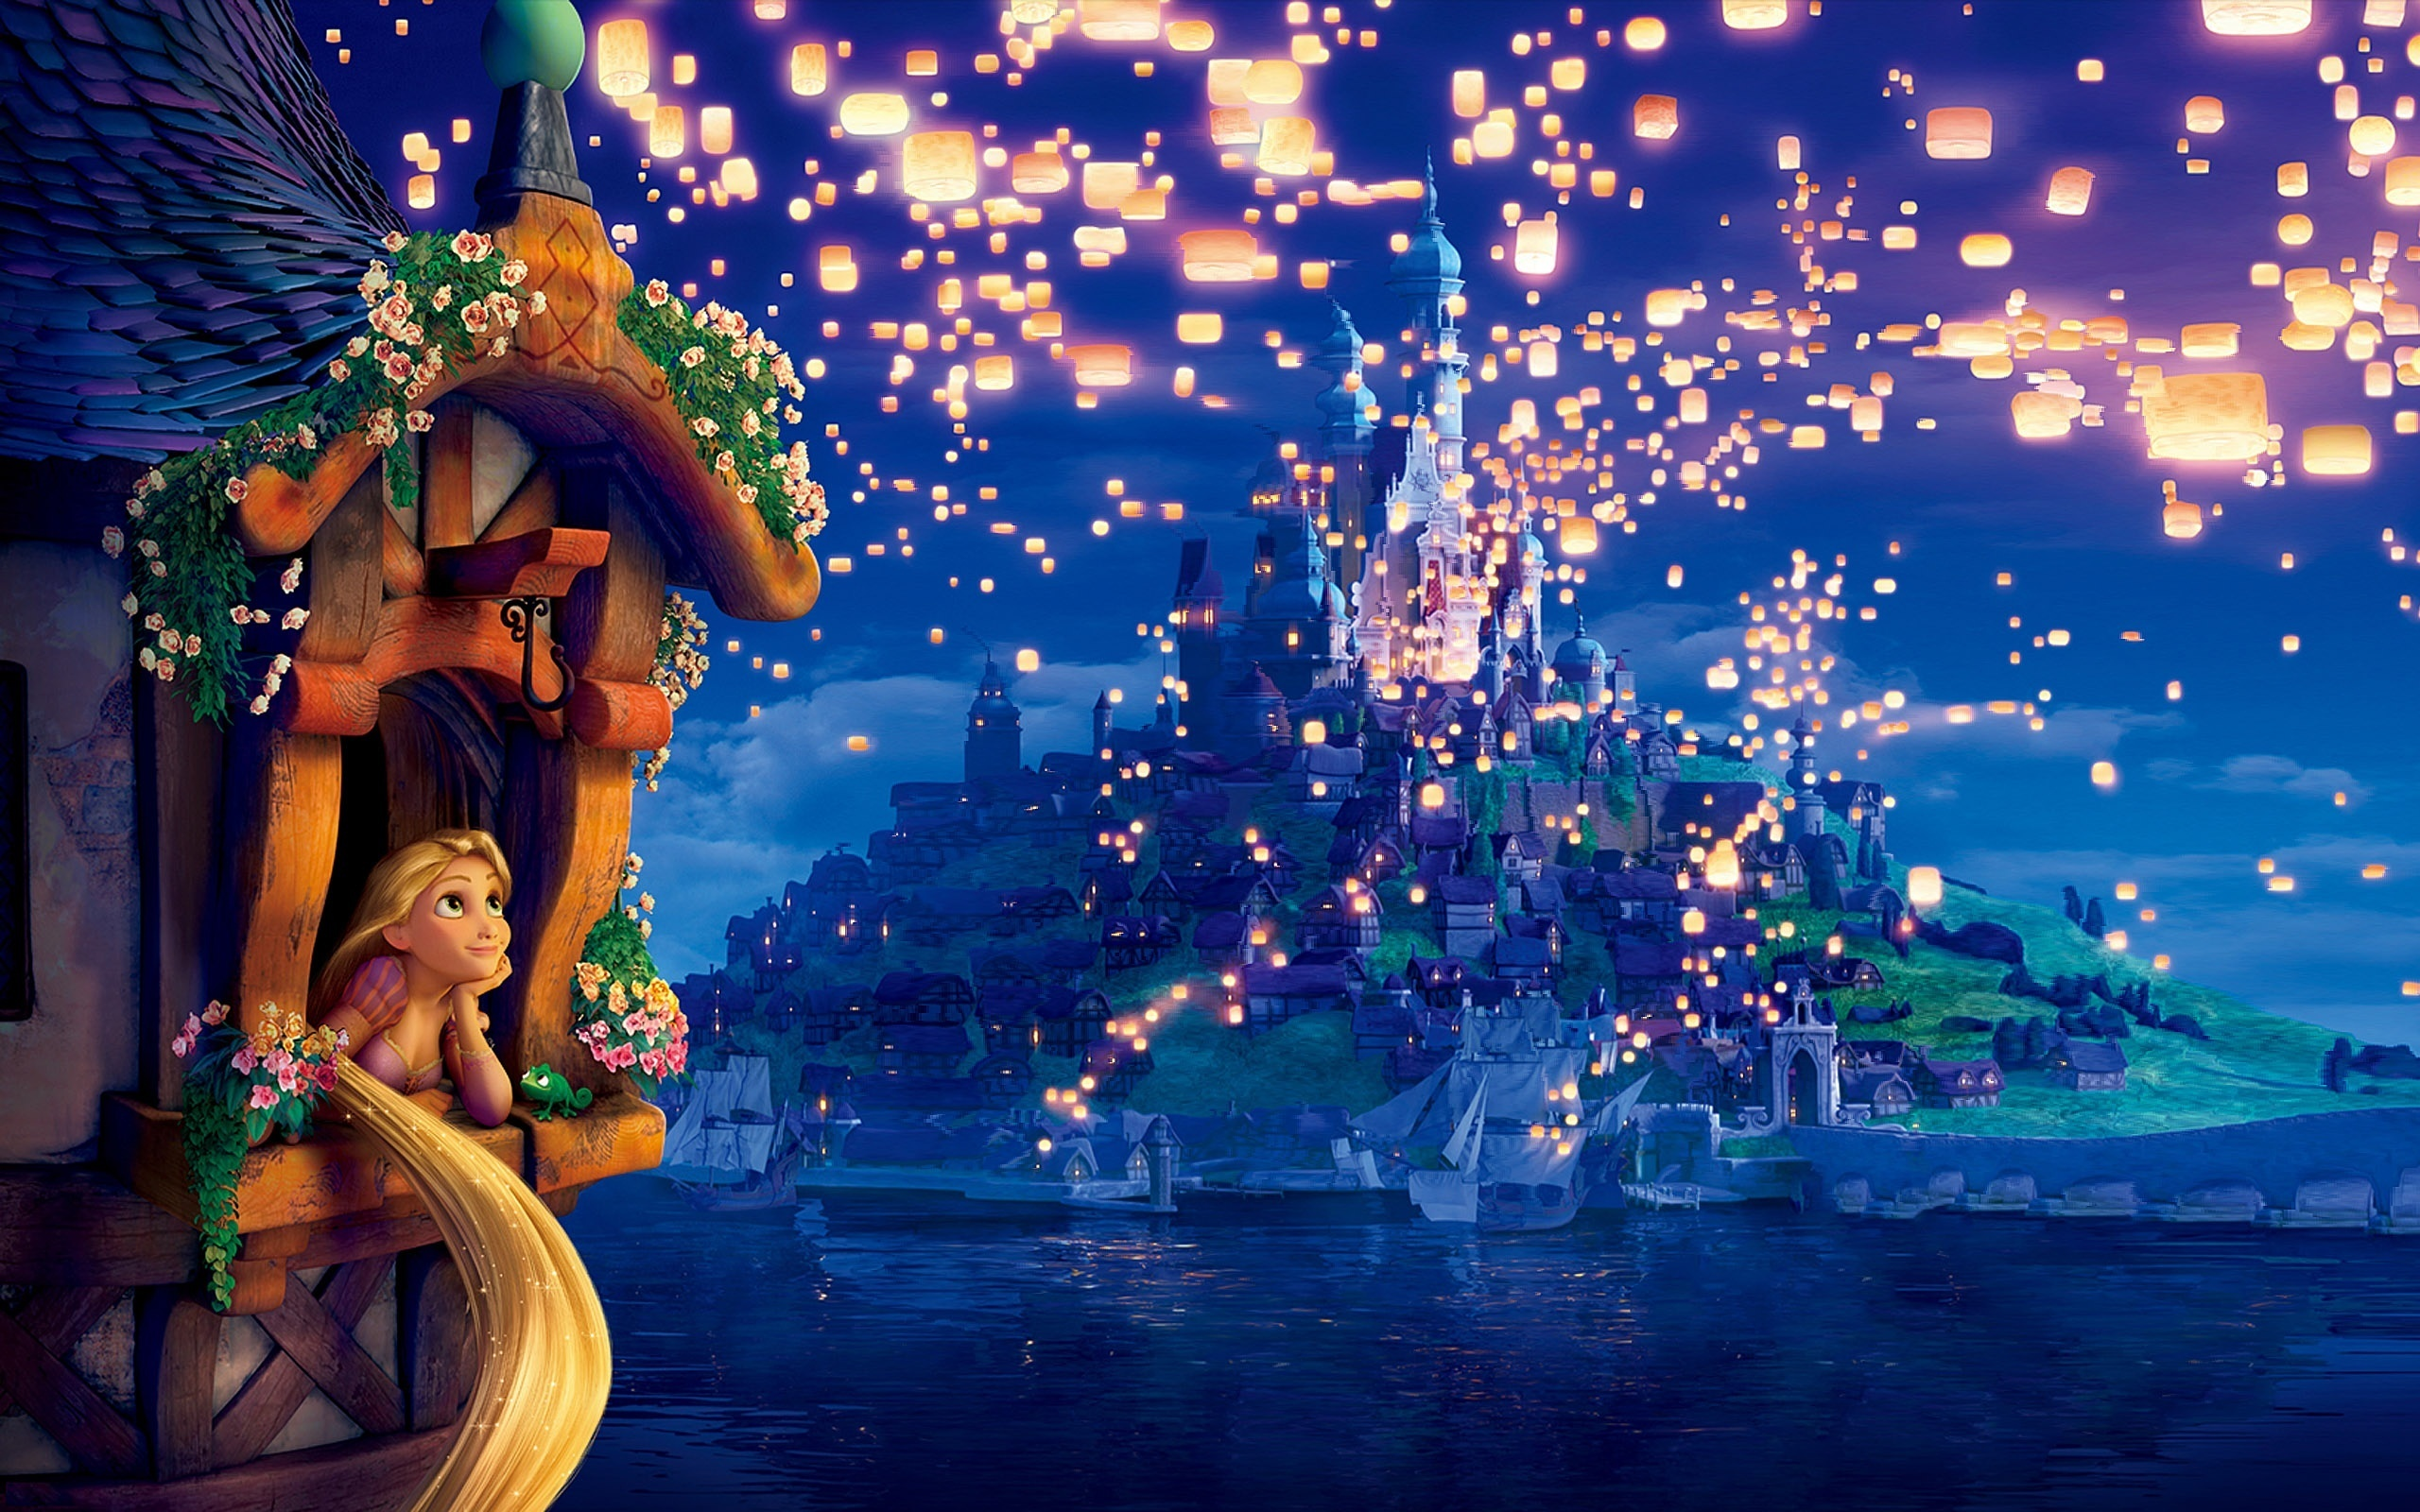 disney tangled images Rapunzel HD wallpaper and background 2560x1600